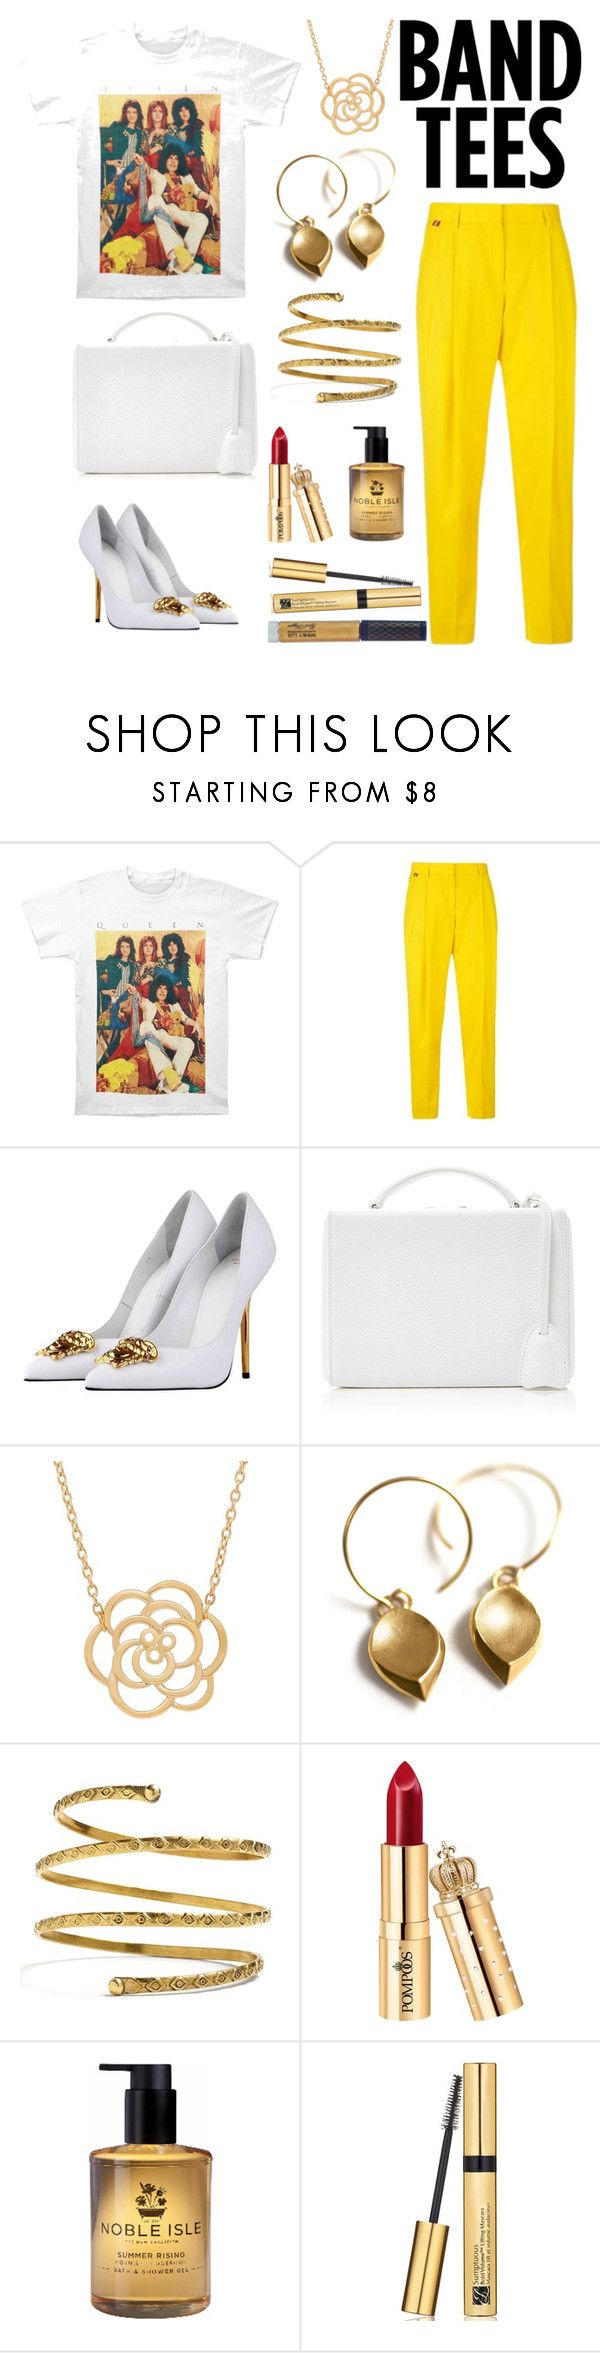 """Queen's colour"" by grace-ooi ❤ liked on Polyvore featuring Paul Smith, Versace, Mark Cross, Lord & Taylor, Venus, Carnill & Company, Estée Lauder and Winky Lux"